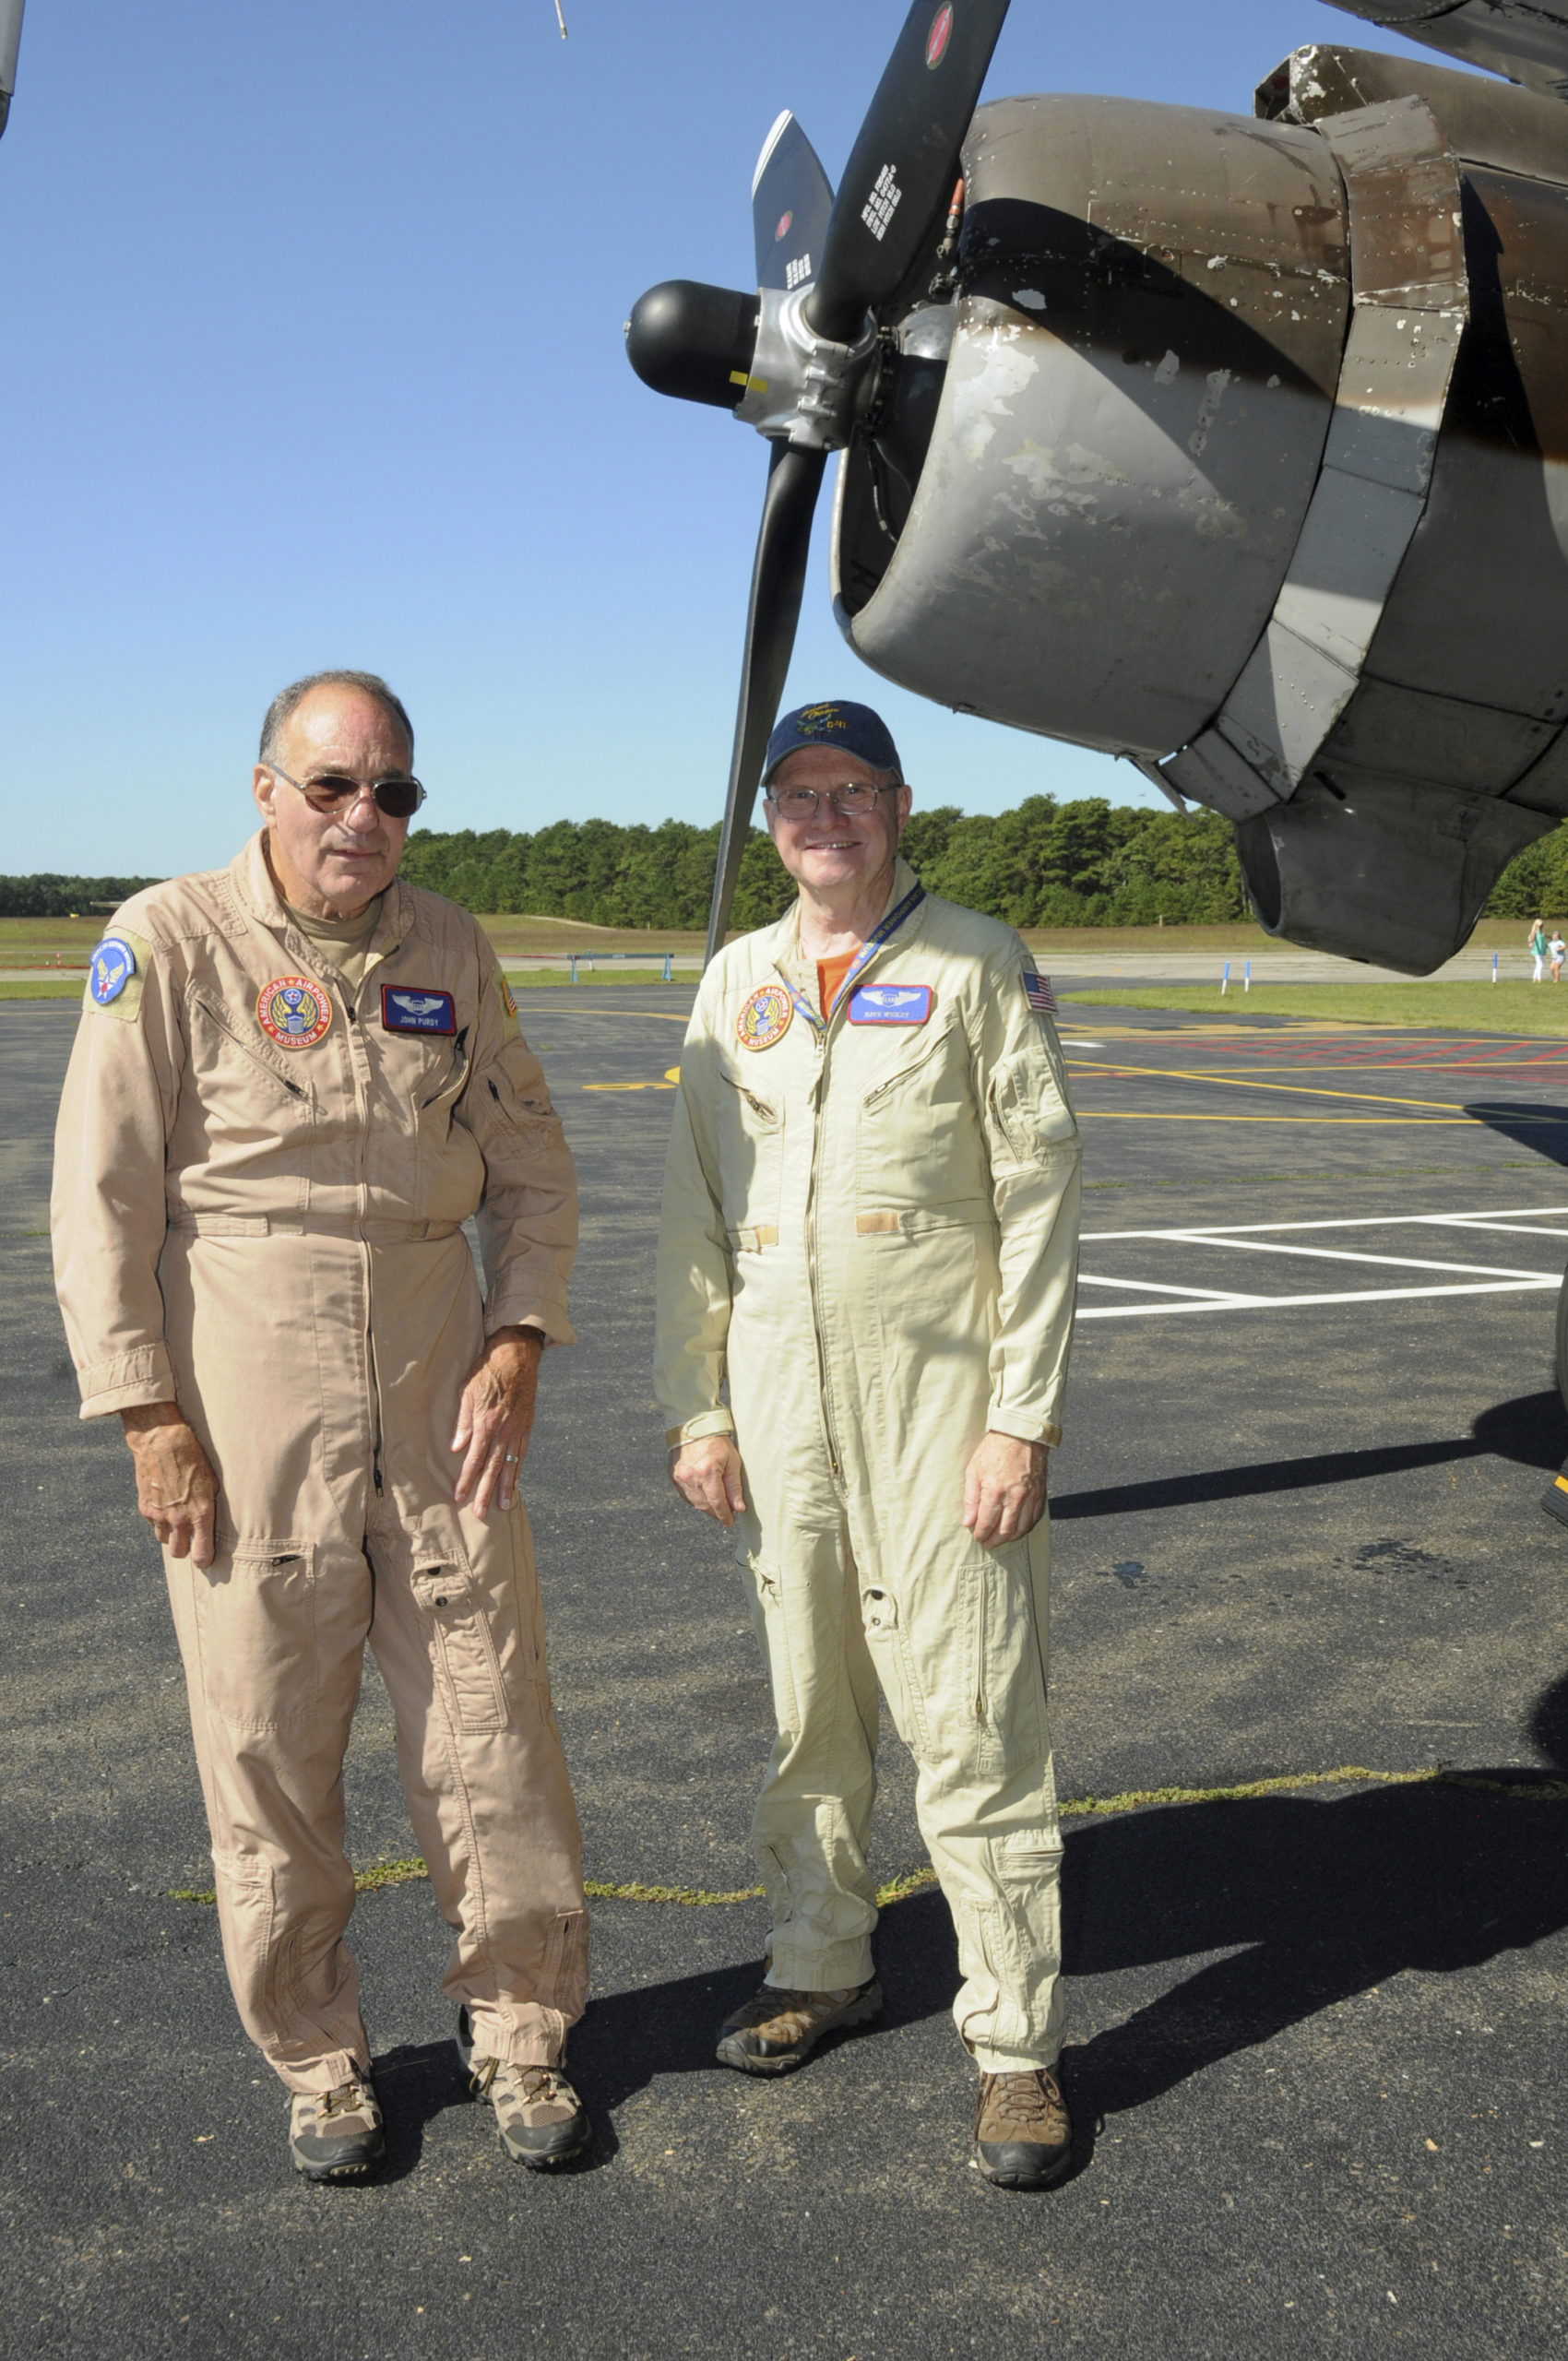 Pilots John Purdy and Dave Wigley flew their plane from Farmingdale to the East Hampton Aviation Association's